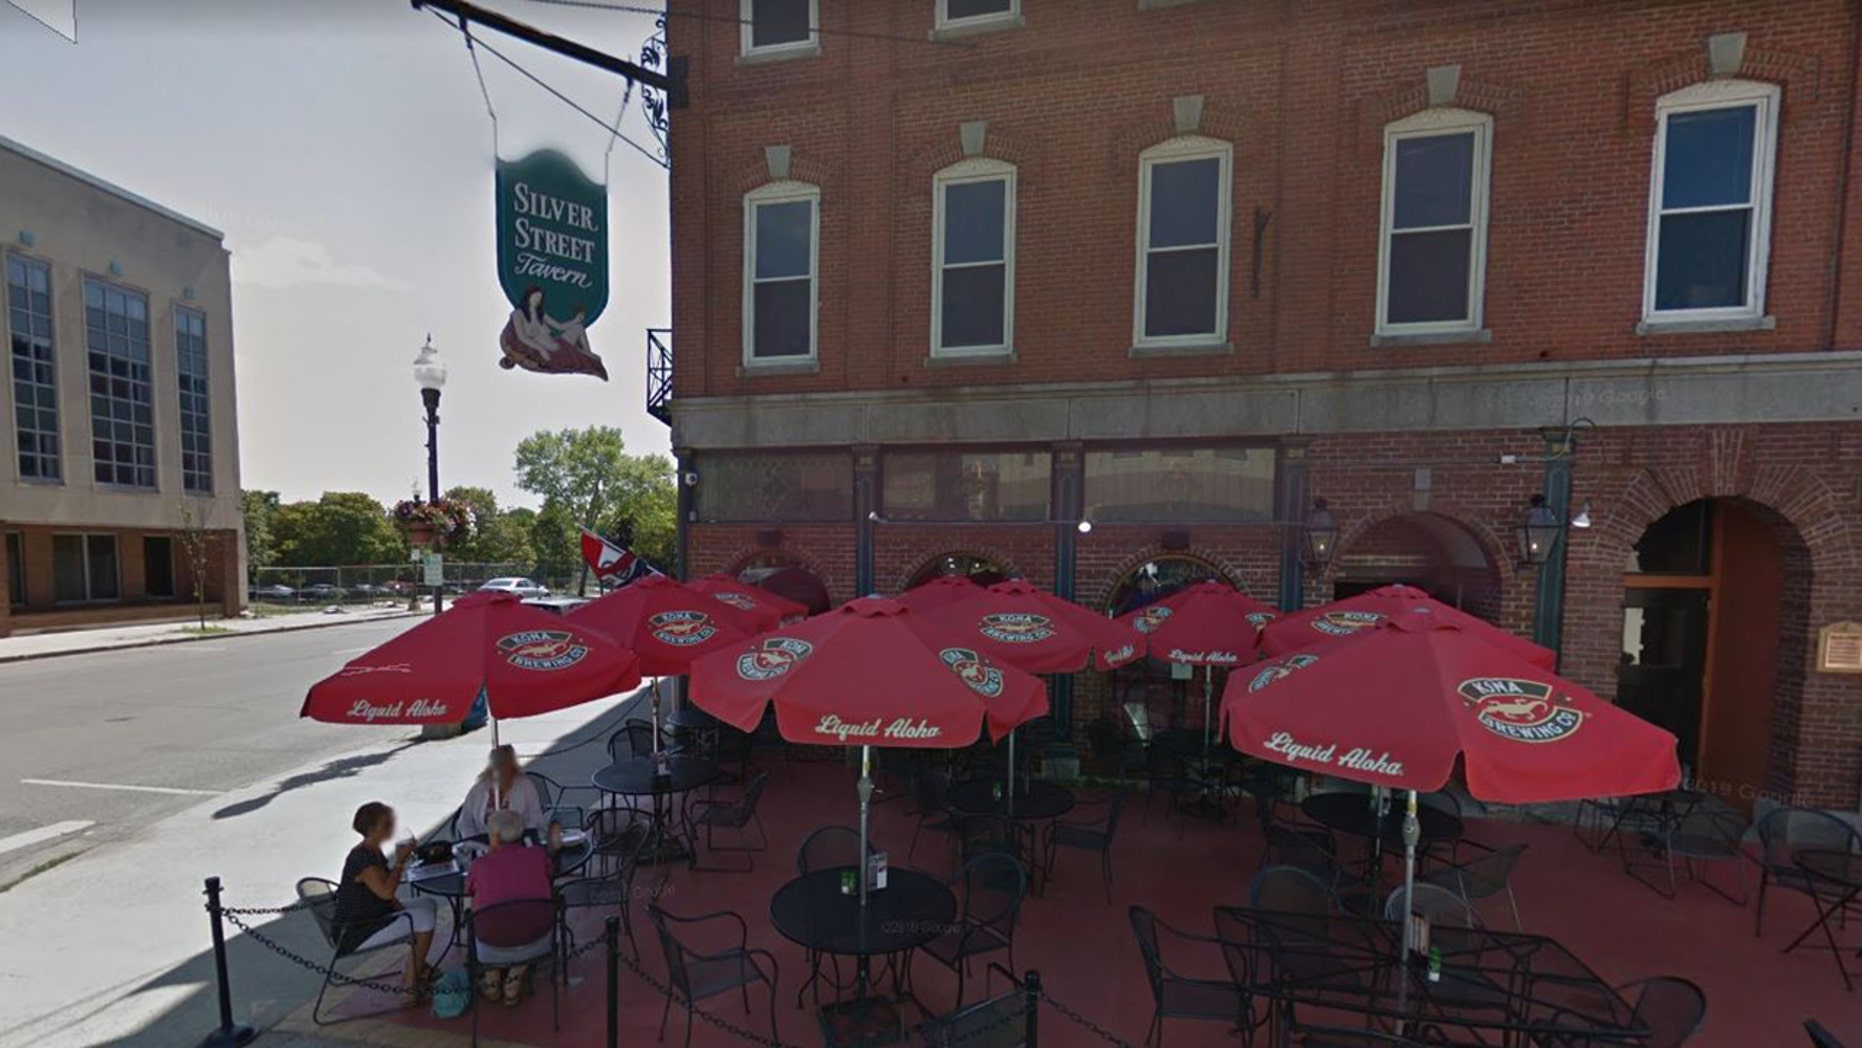 Silver Street Tavern restaurant staff in Waterville, Maine, were shocked by a customer's kindness on Saturday night.